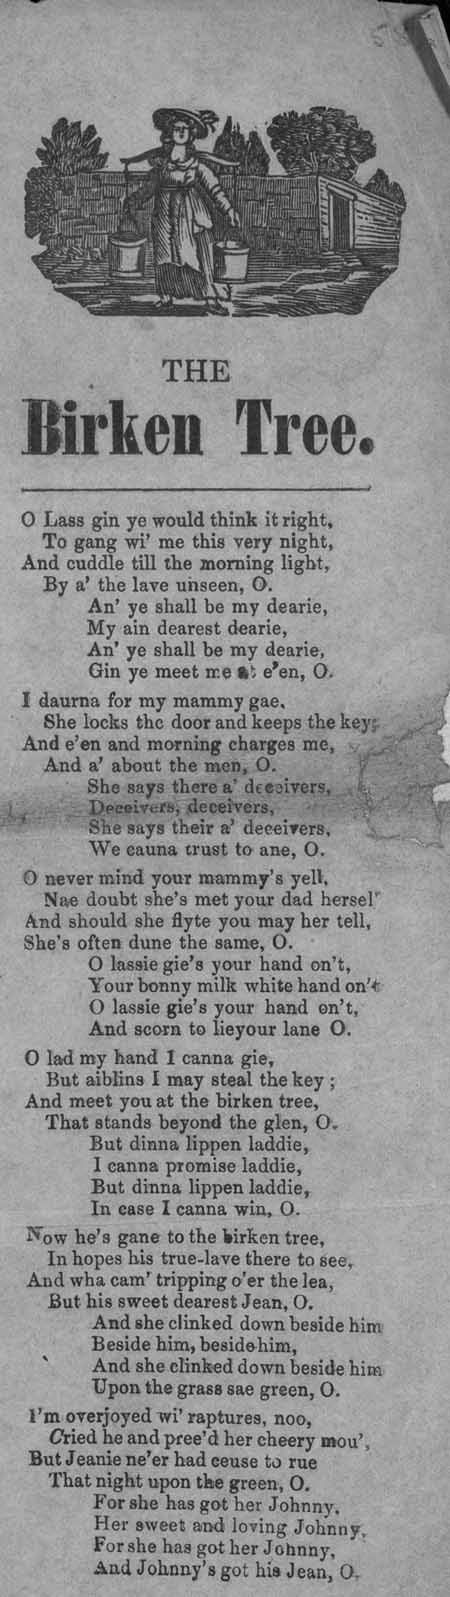 Broadside ballad entitled 'The Birken Tree'